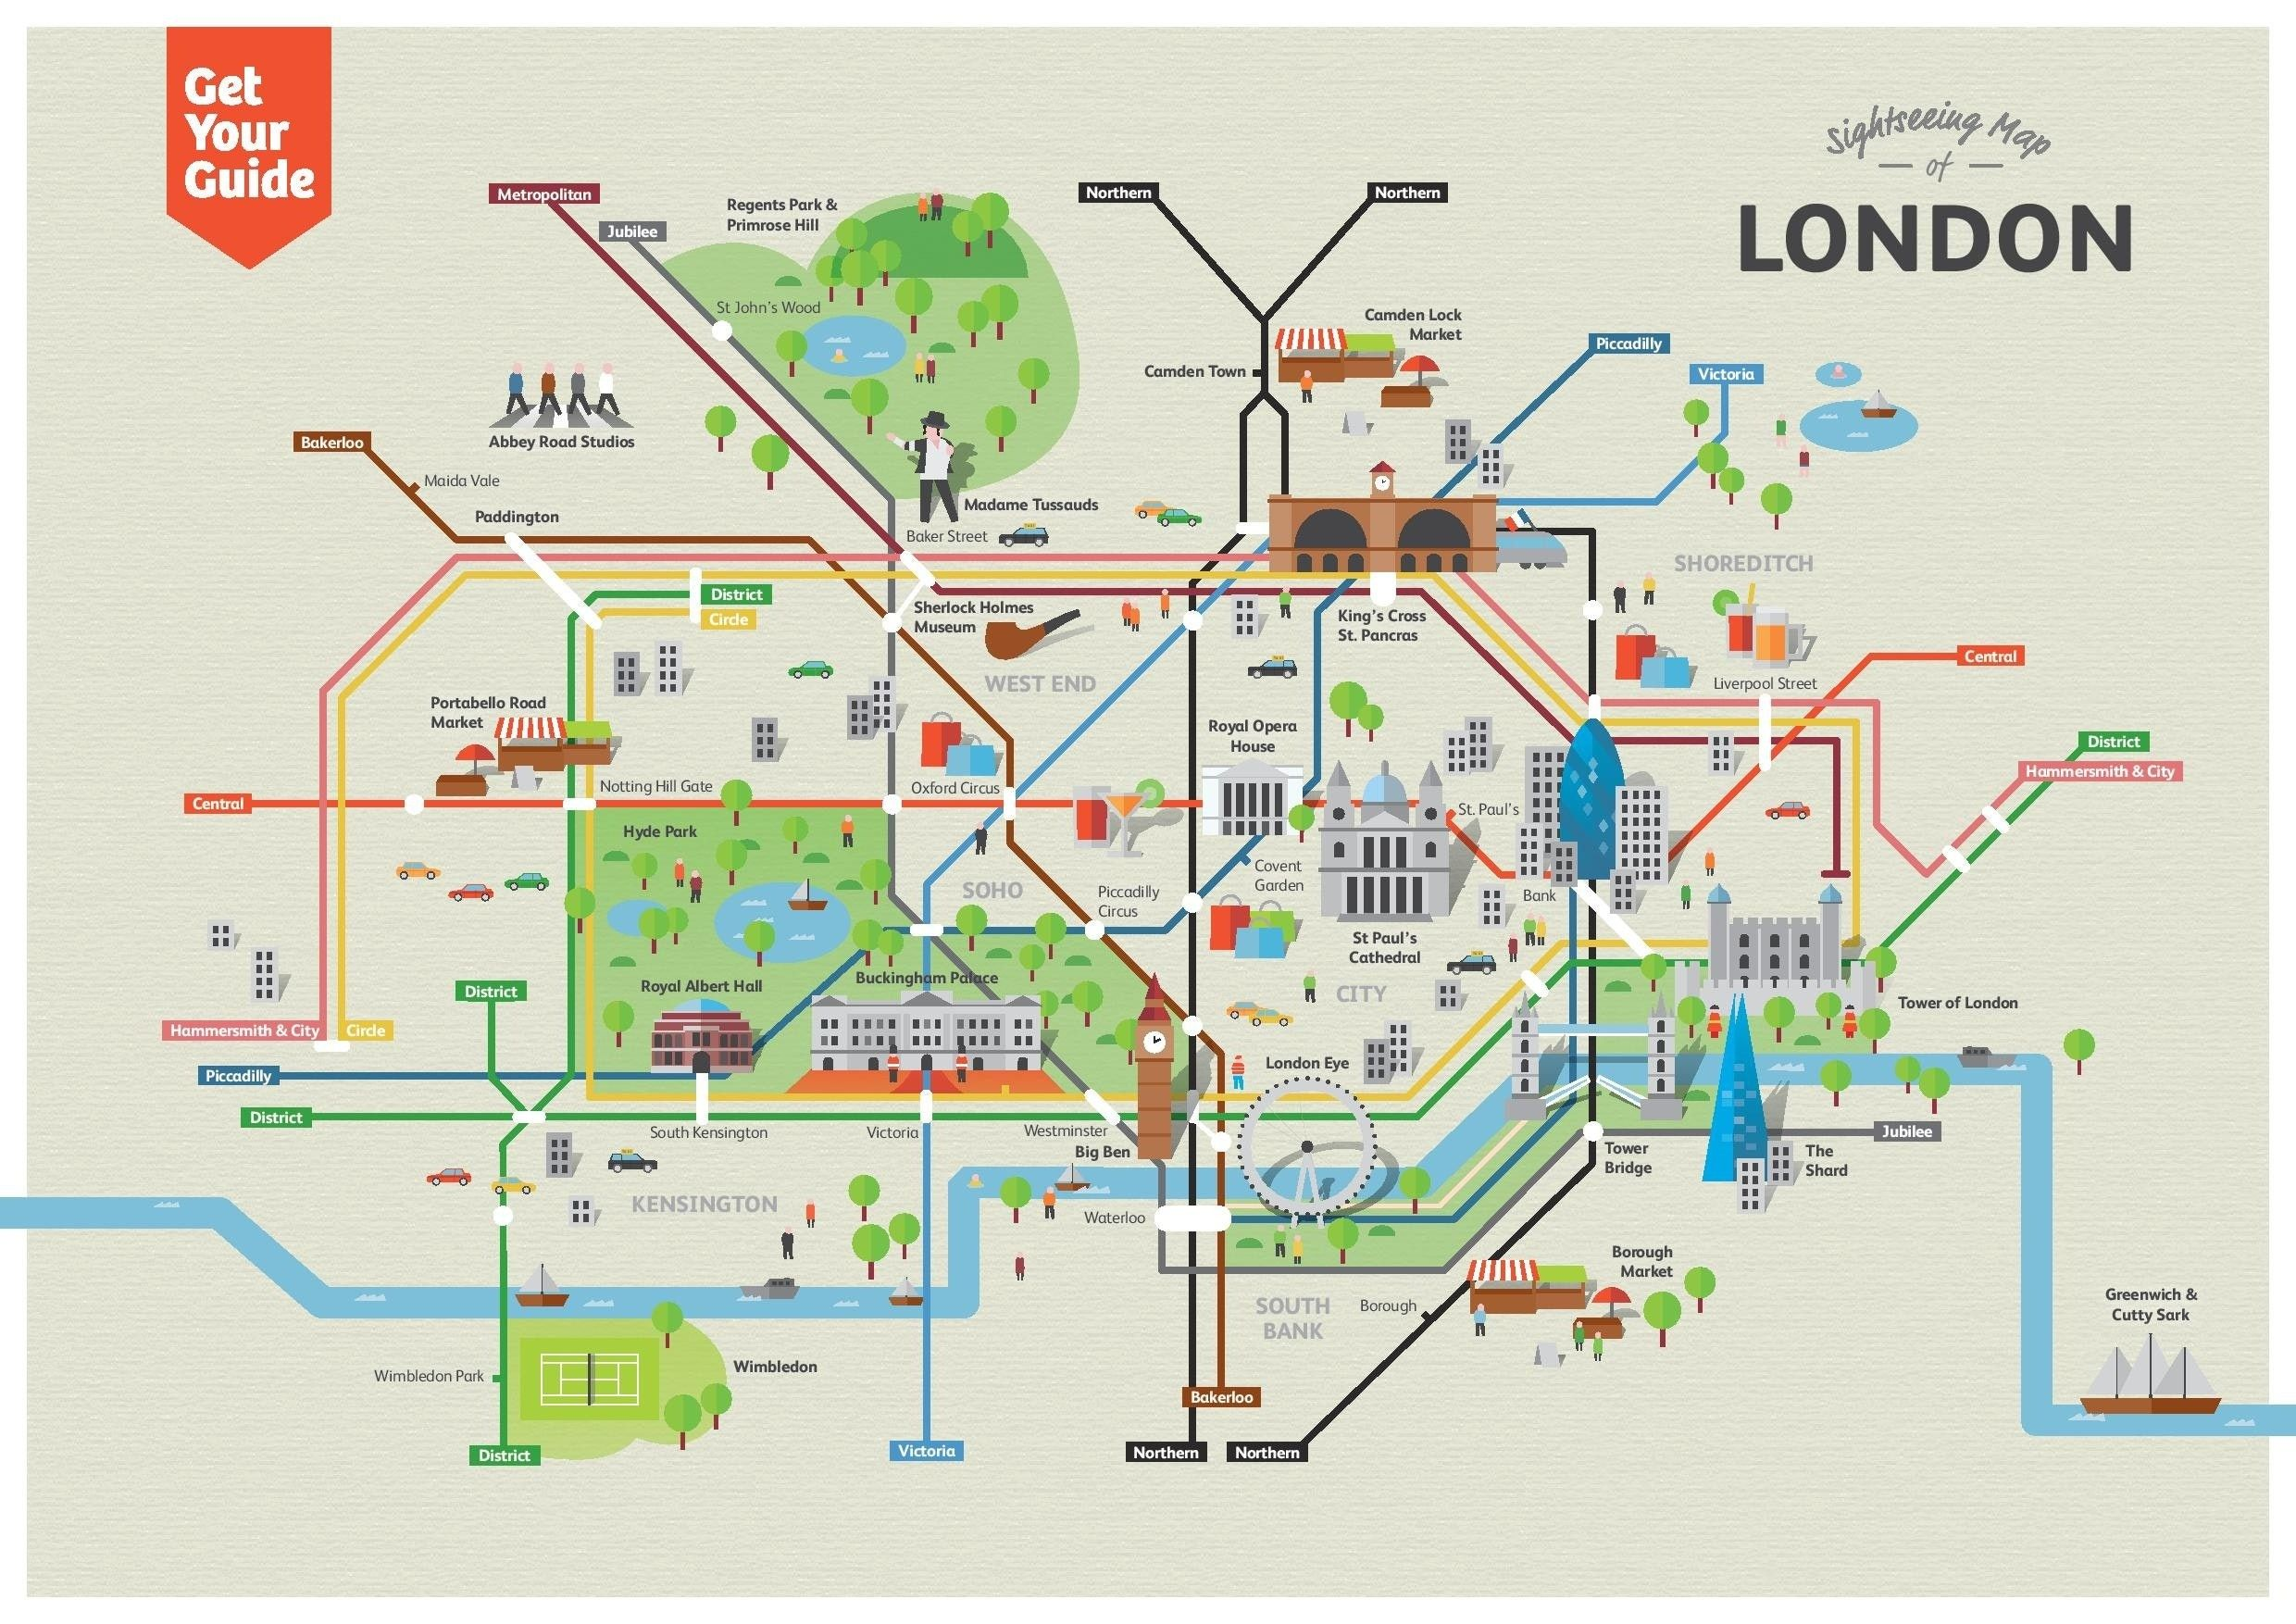 Map Of Attractions London.London Underground Map With Tourist Attractions Printable Interior